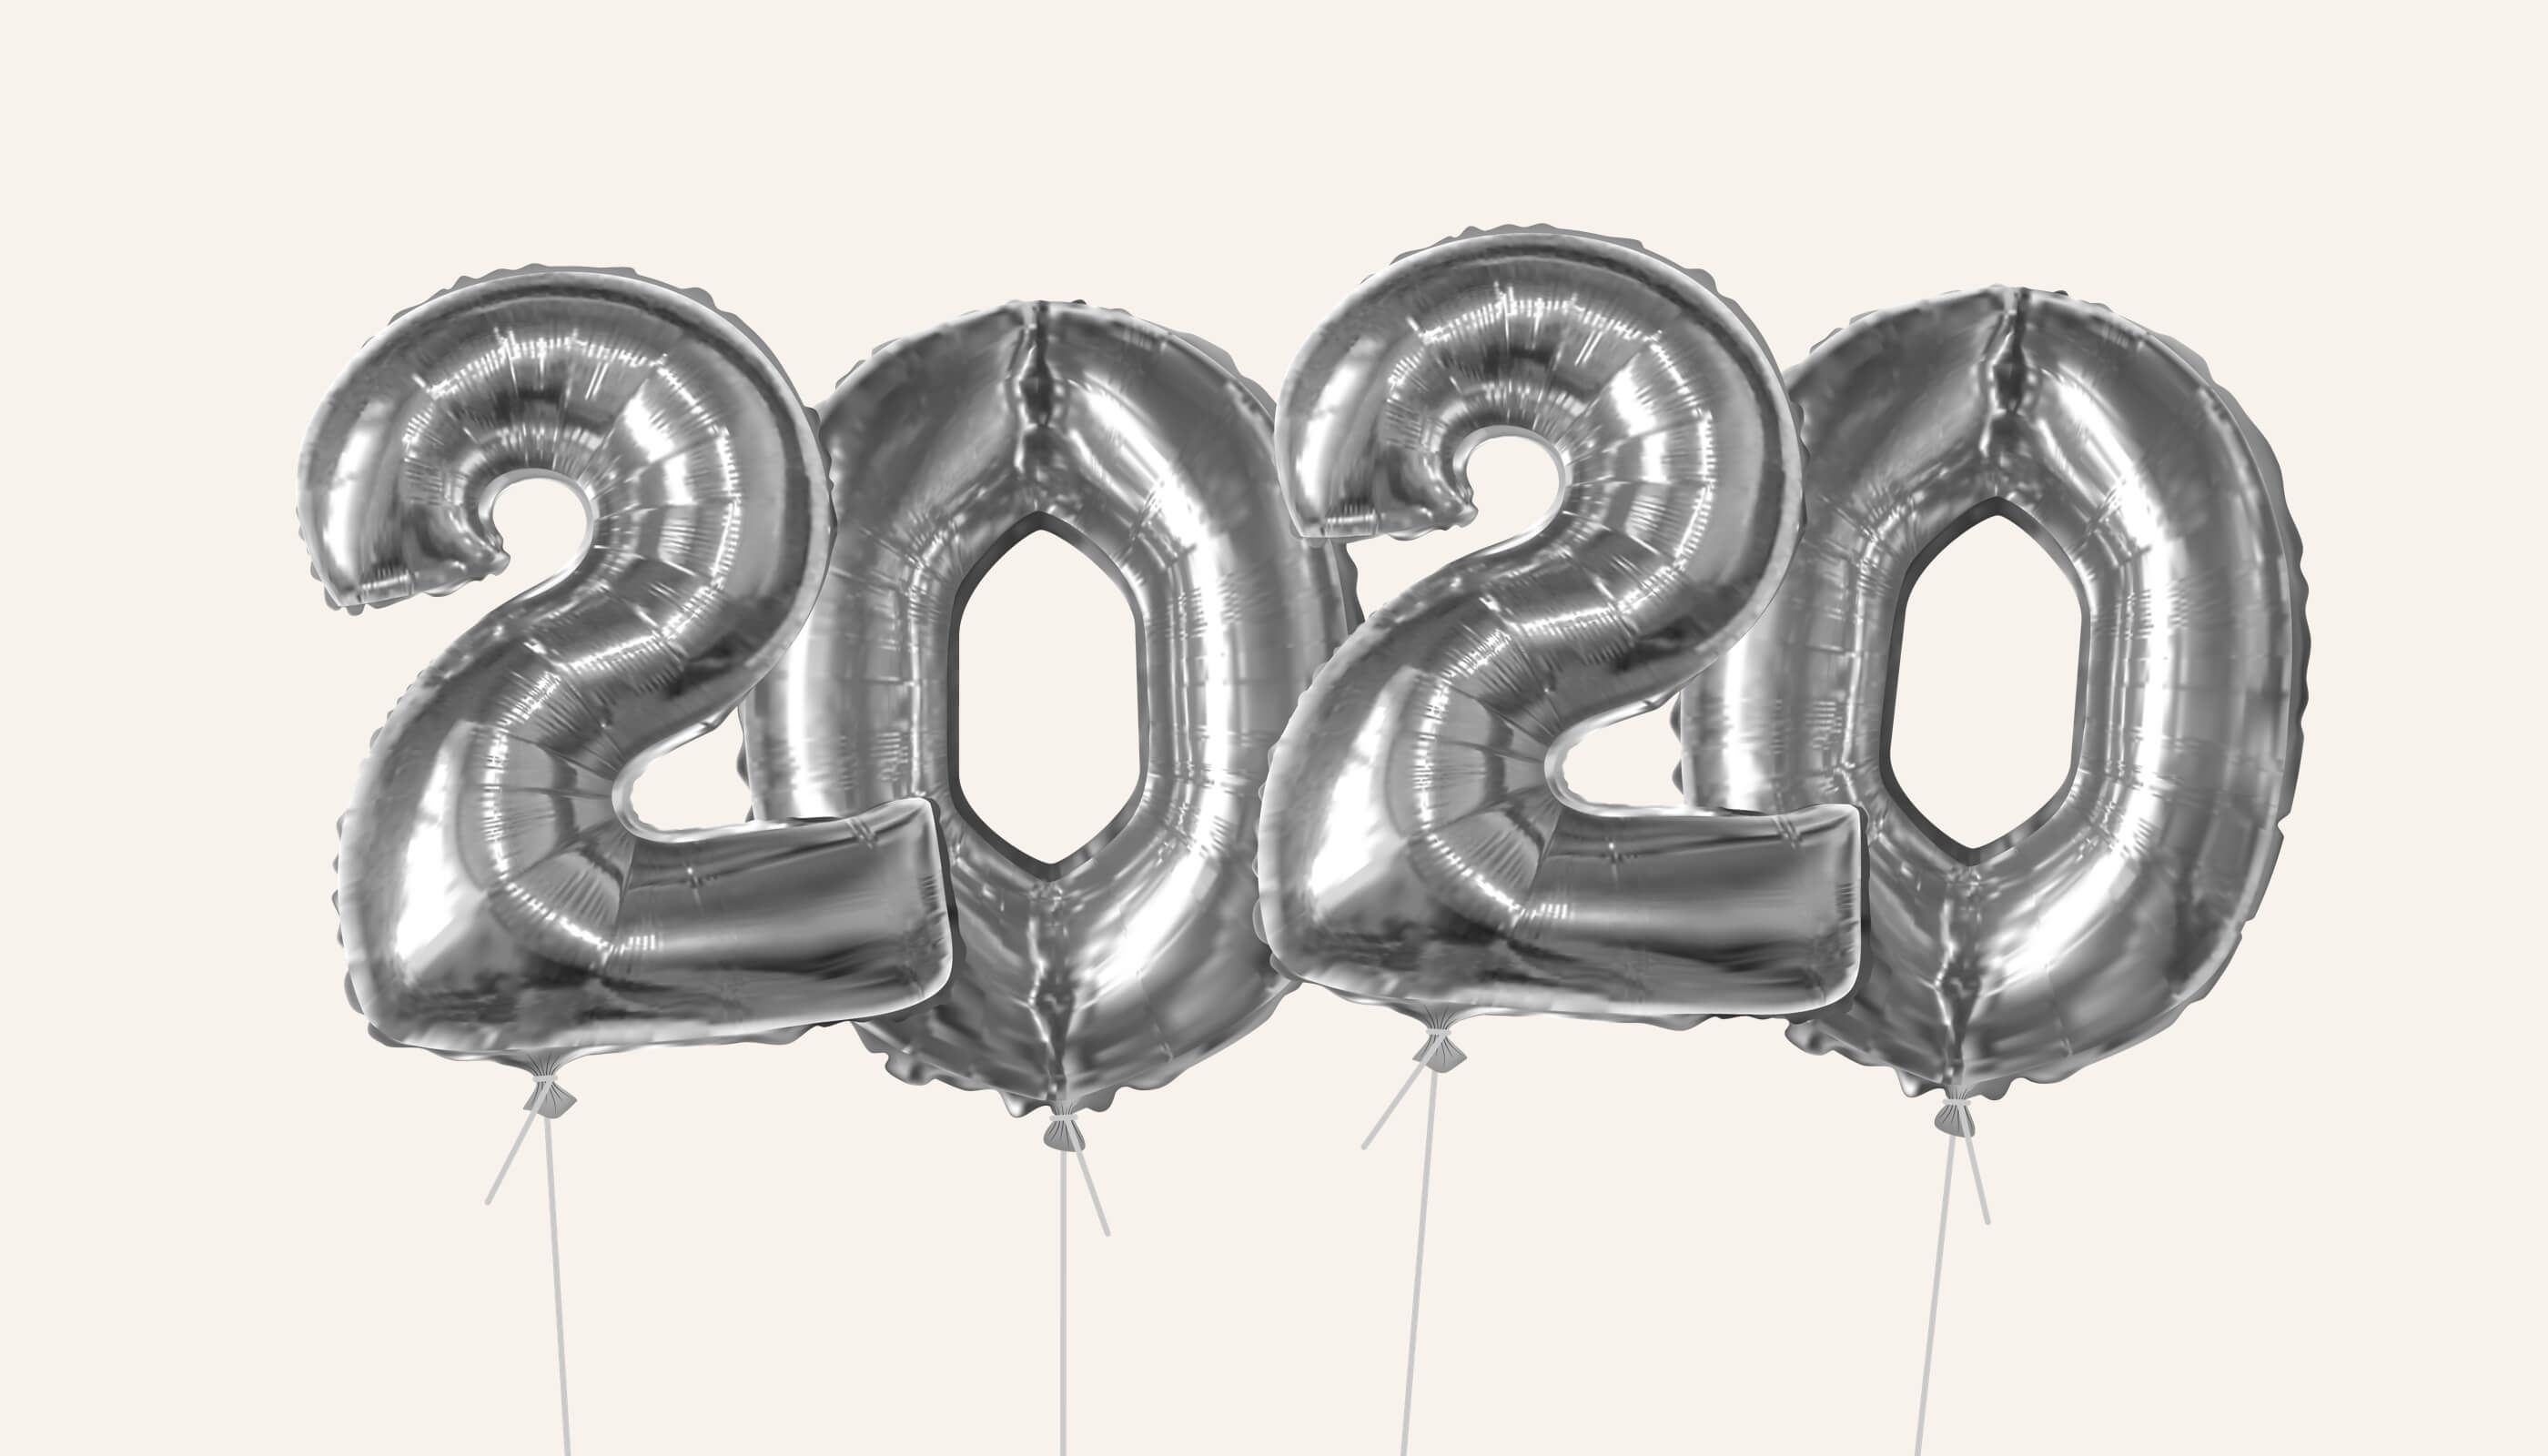 Silver balloons depicting 2020